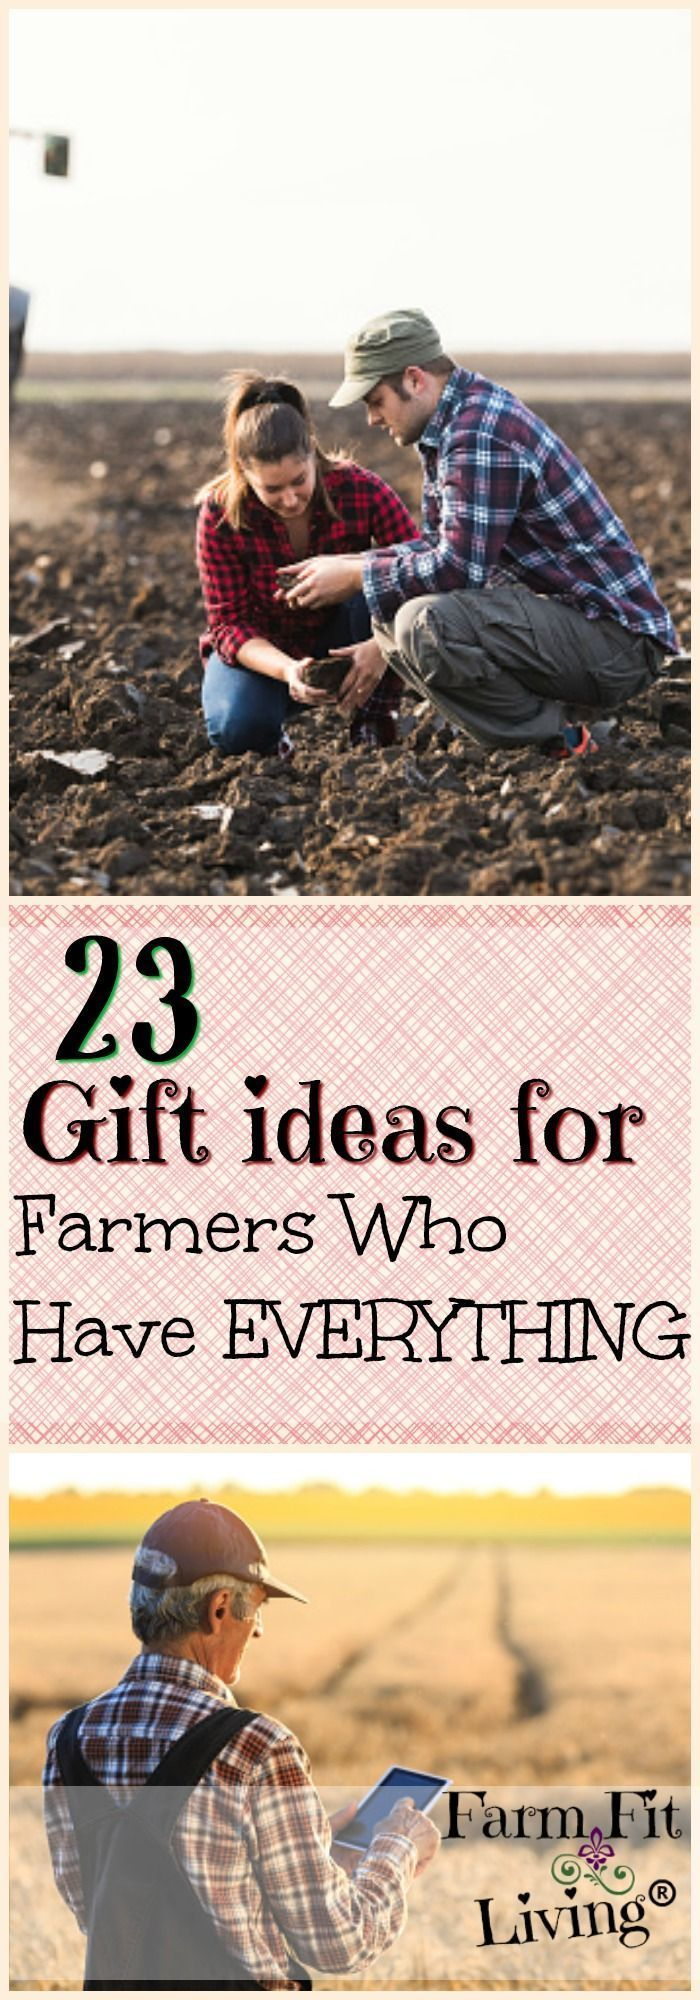 23 Gift Ideas For Farmers Who Have Everything Farm Gifts Farmer Rural Gifts